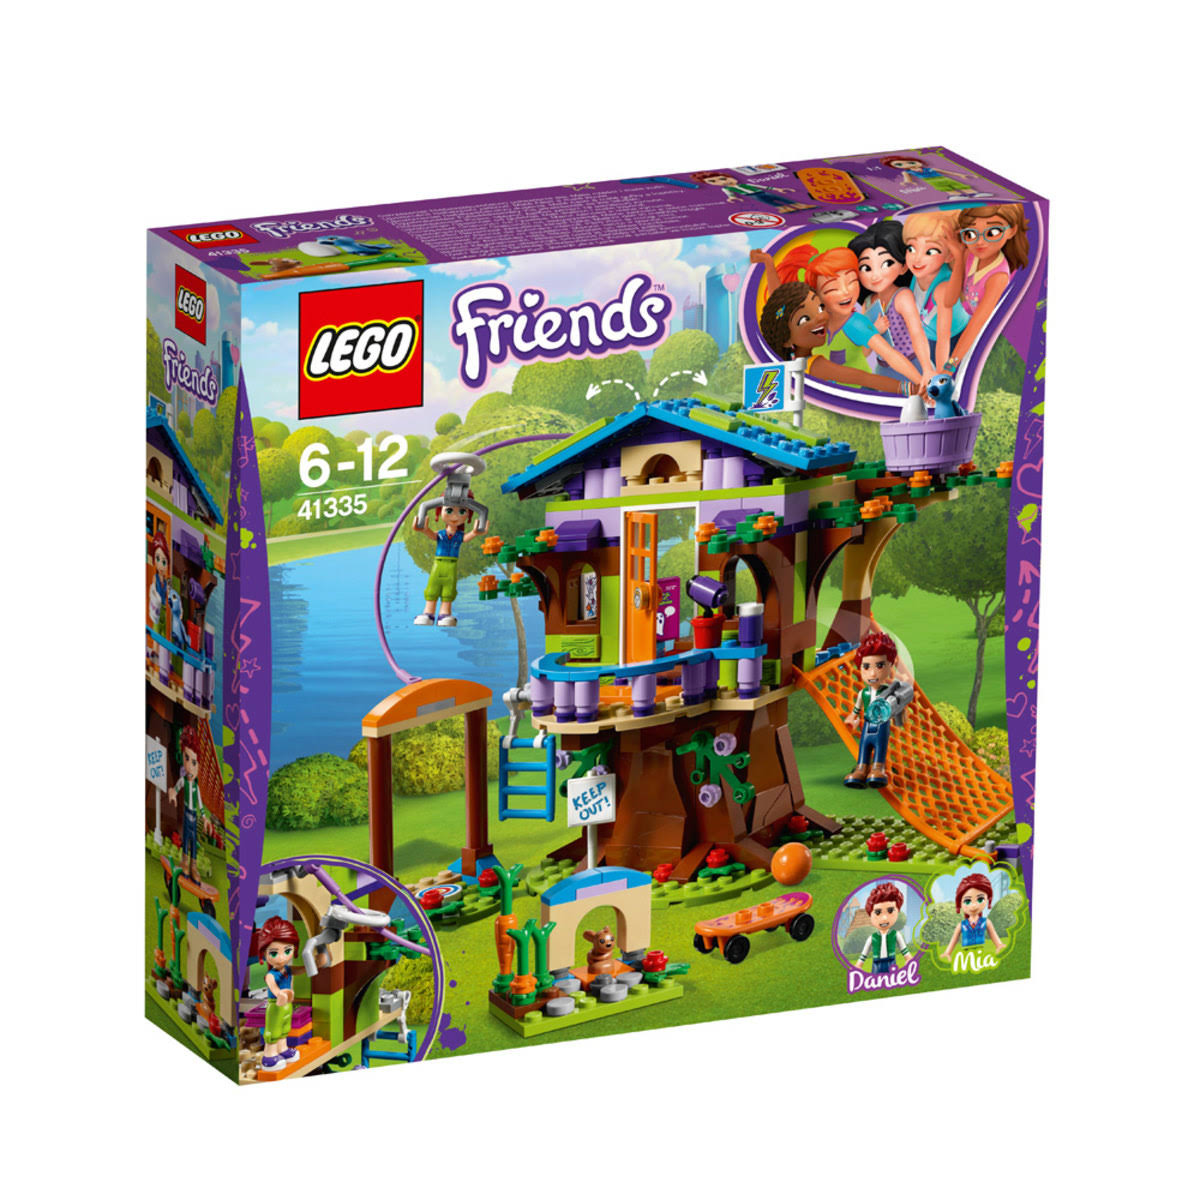 LEGO Friends Mia's Tree House Building Kit - 351 Pieces